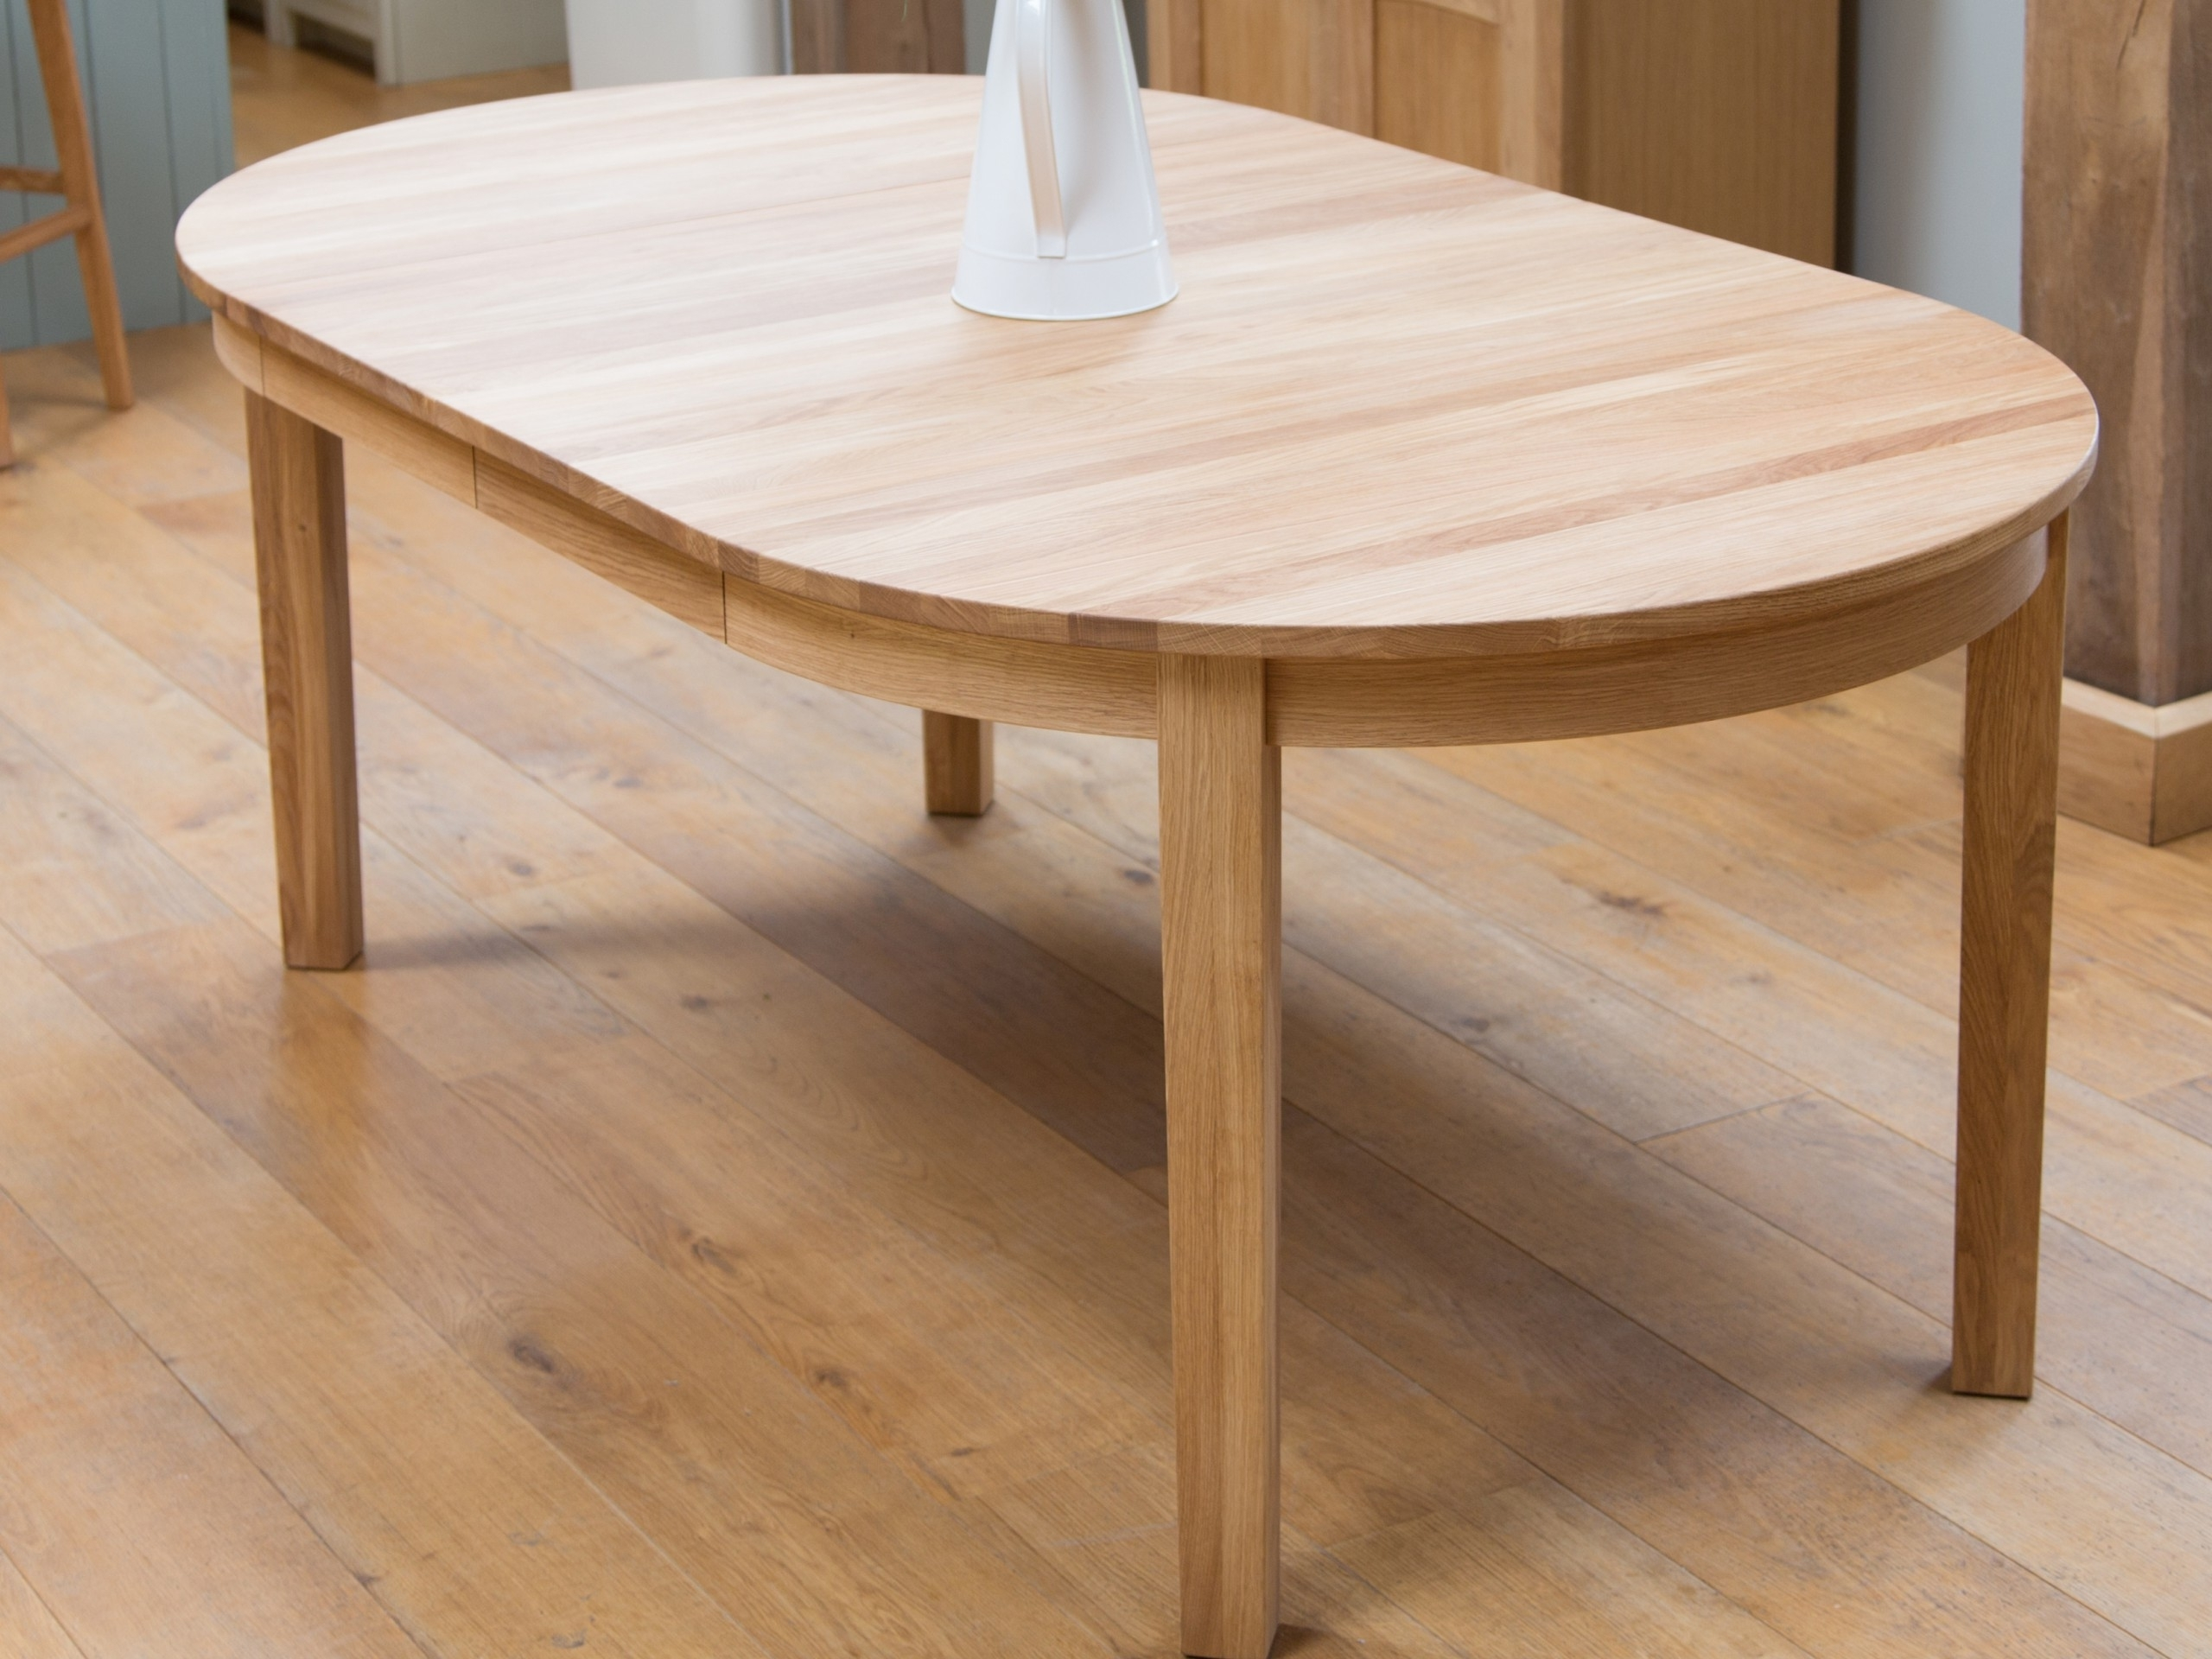 Preferred Round Extendable Dining Tables And Chairs For Round Extendable Dining Table Design (View 7 of 25)